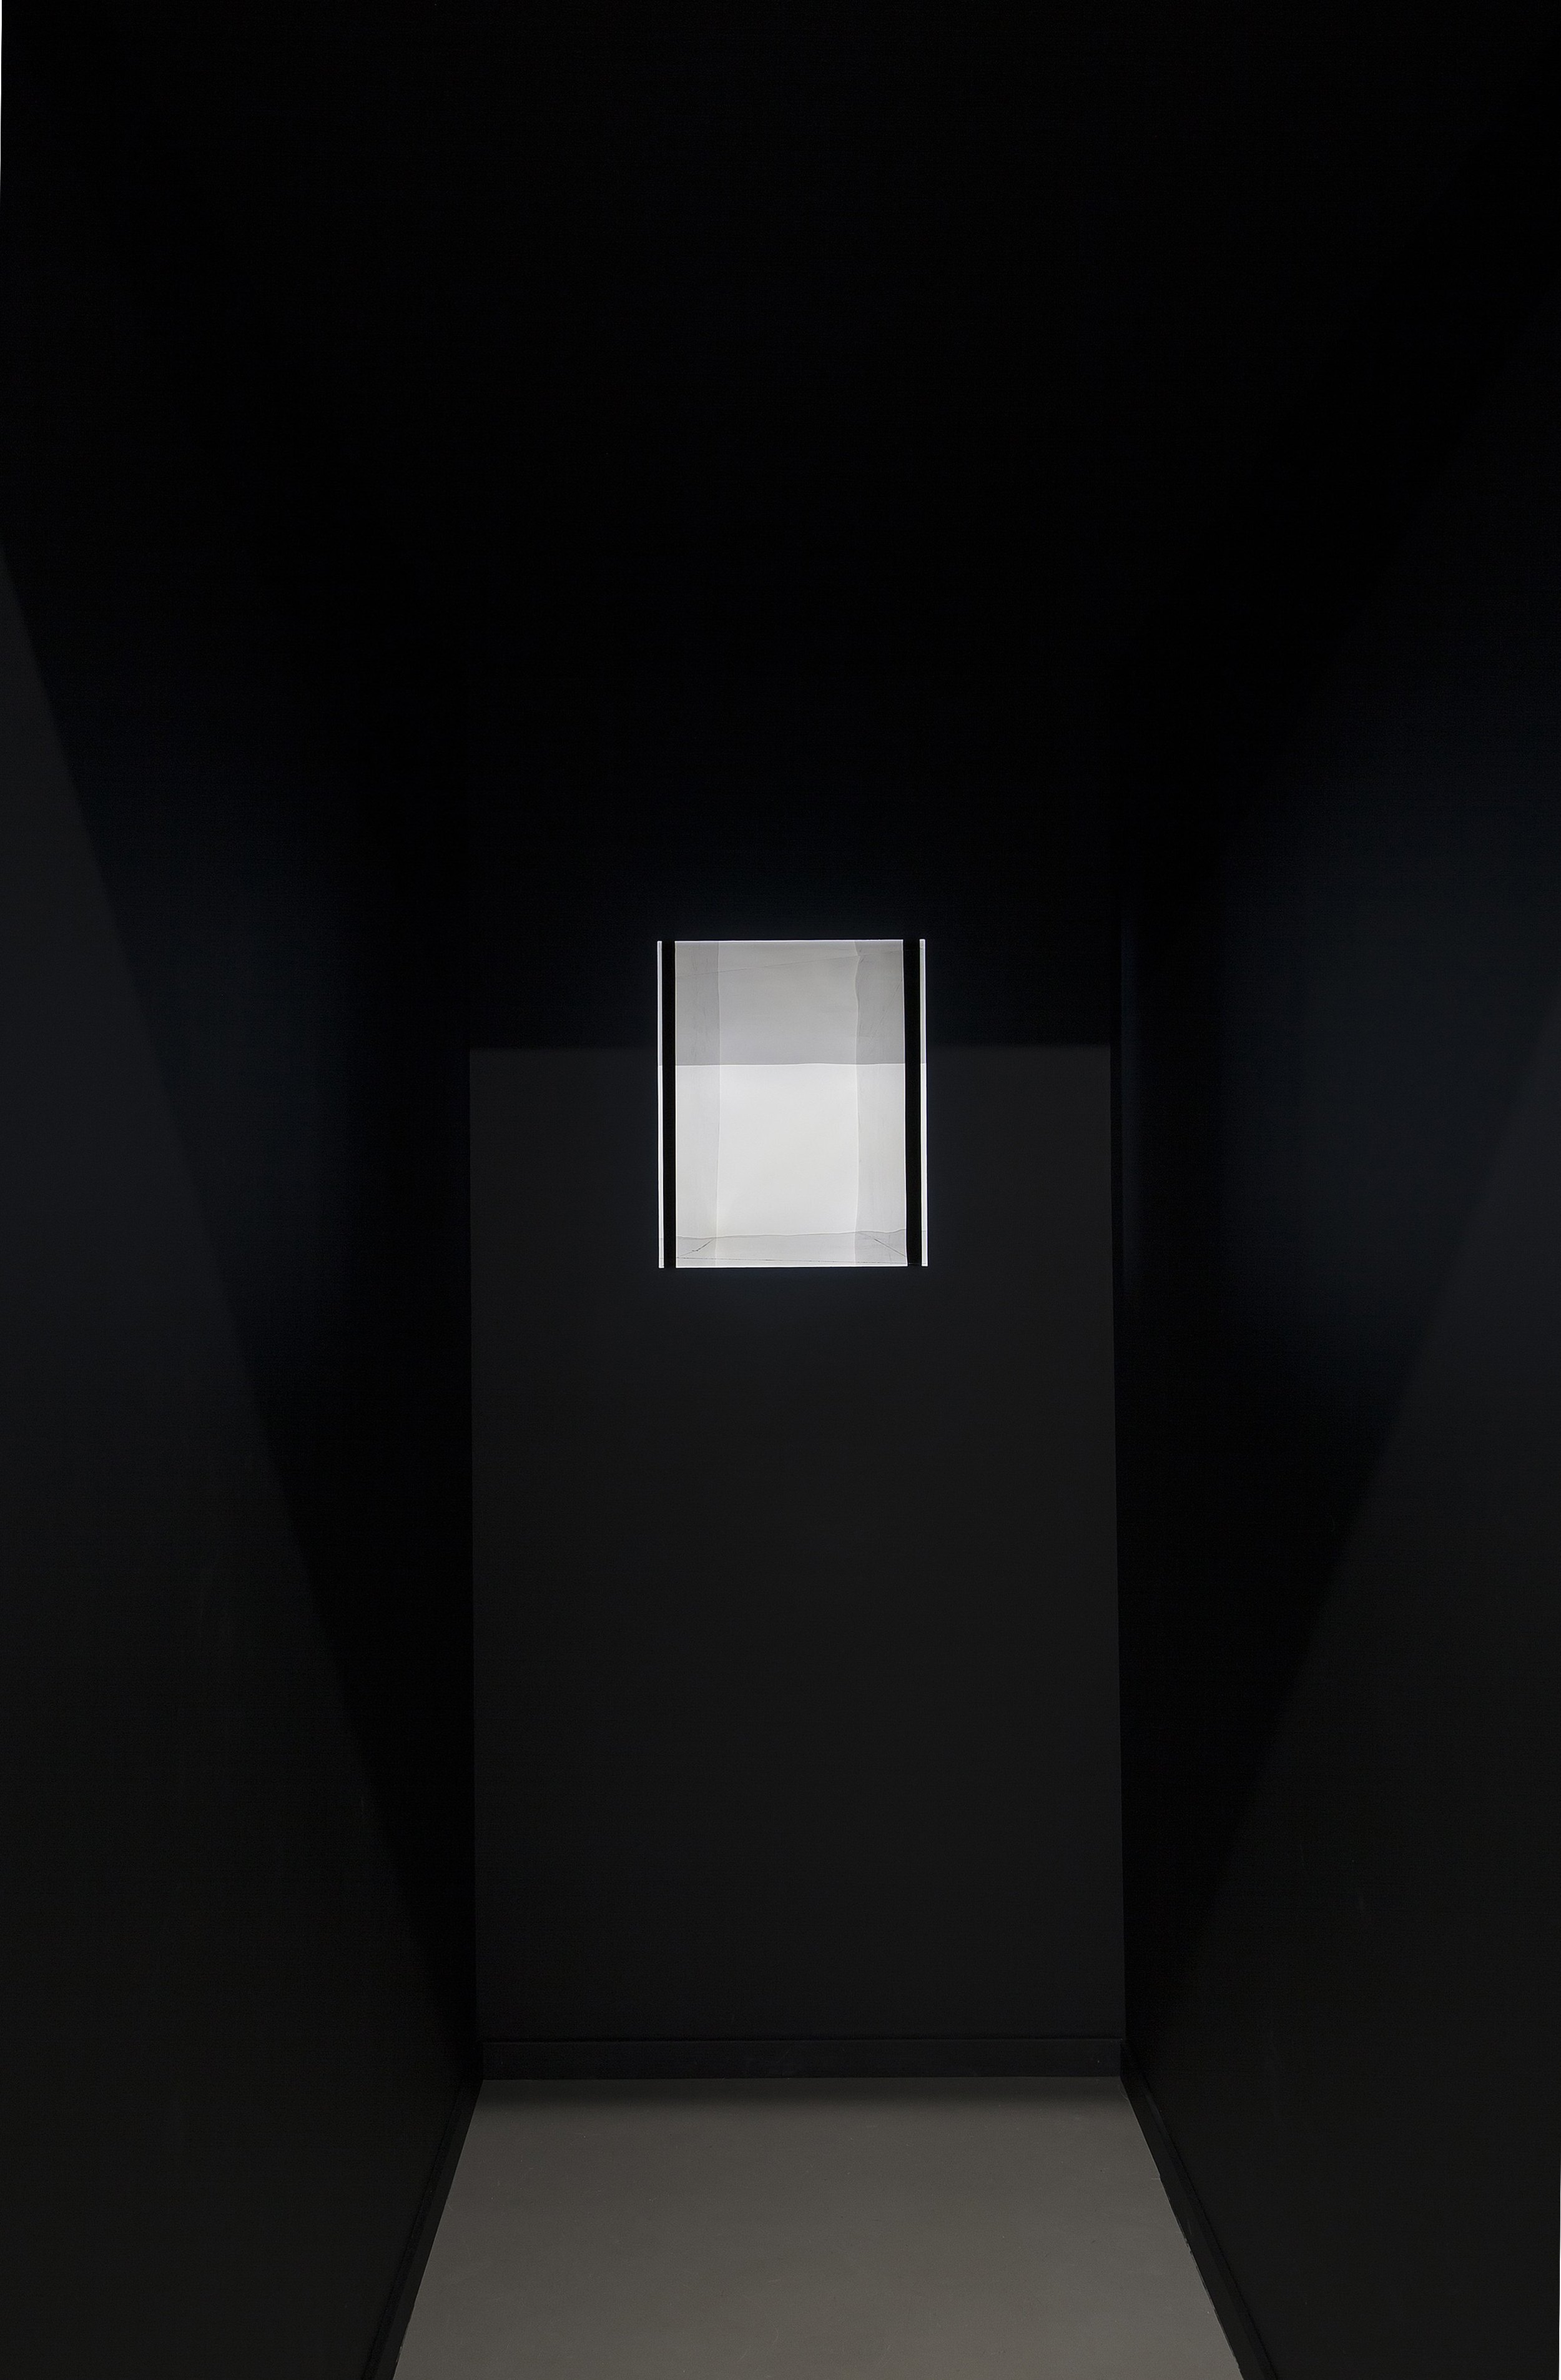 Specular Reflection (black) Site-specific installation with new wall and roof construction, black perspex tunnel construction and led light.